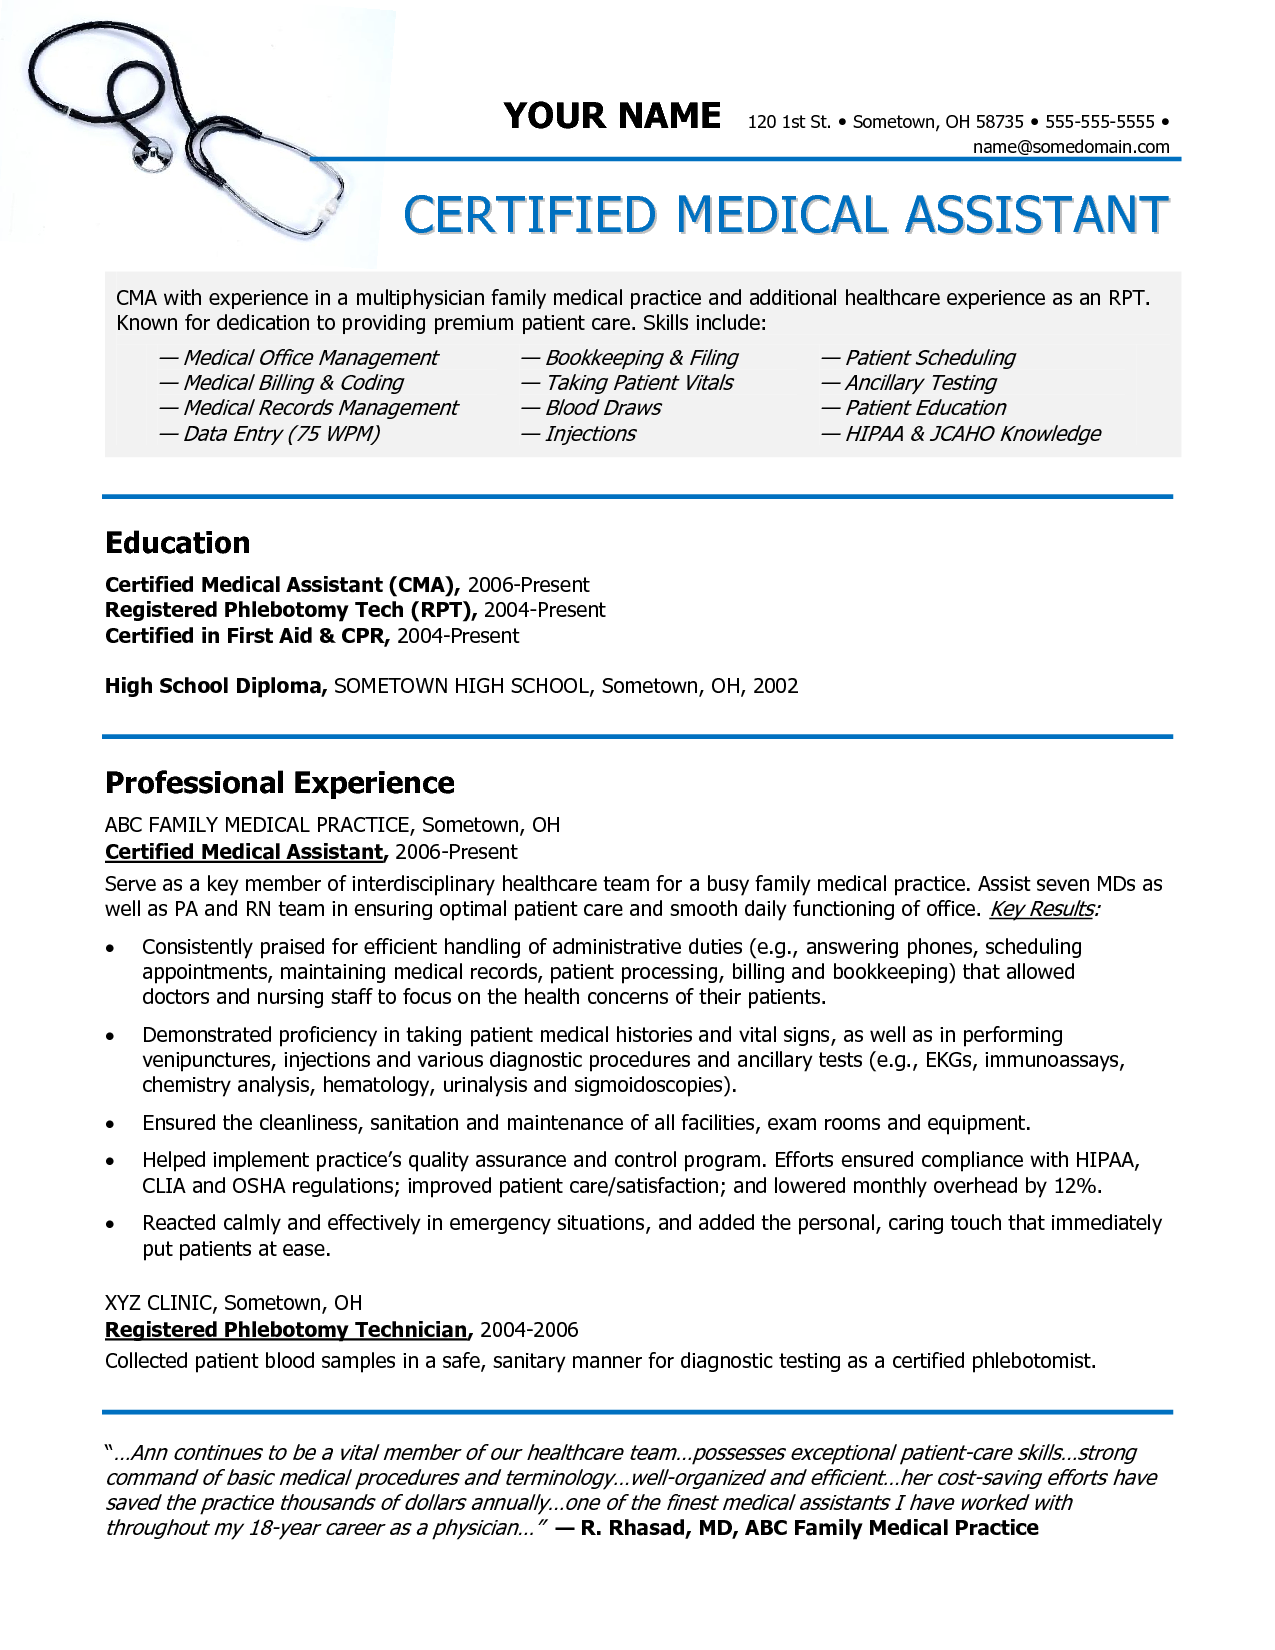 Medical Assistant Resume Entry Level Examples 18 Medical Assistant .  Entry Level Medical Assistant Resume